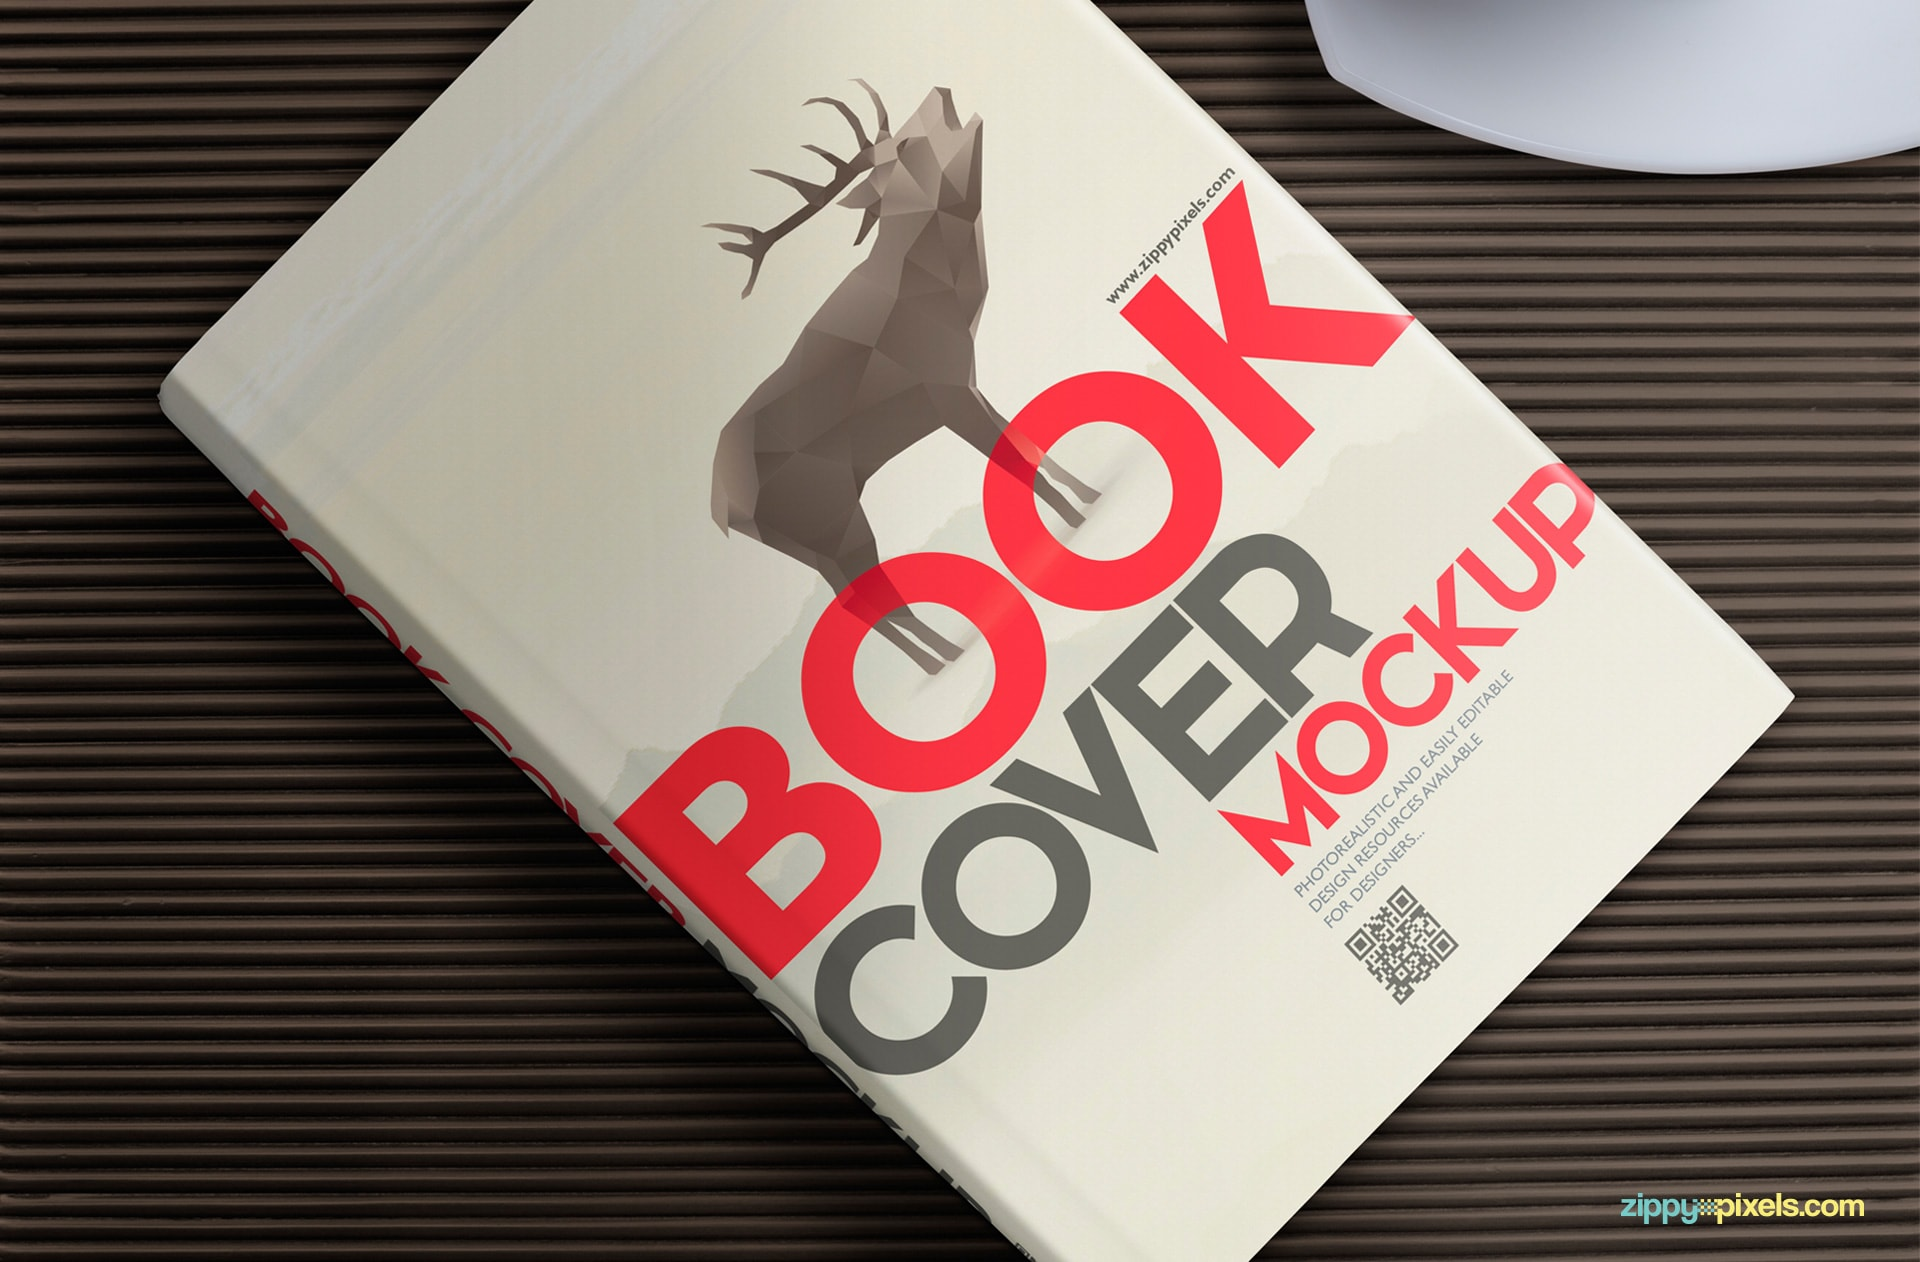 How To Make A Book Cover Mockup : Free book mockup for hardcover designs zippypixels